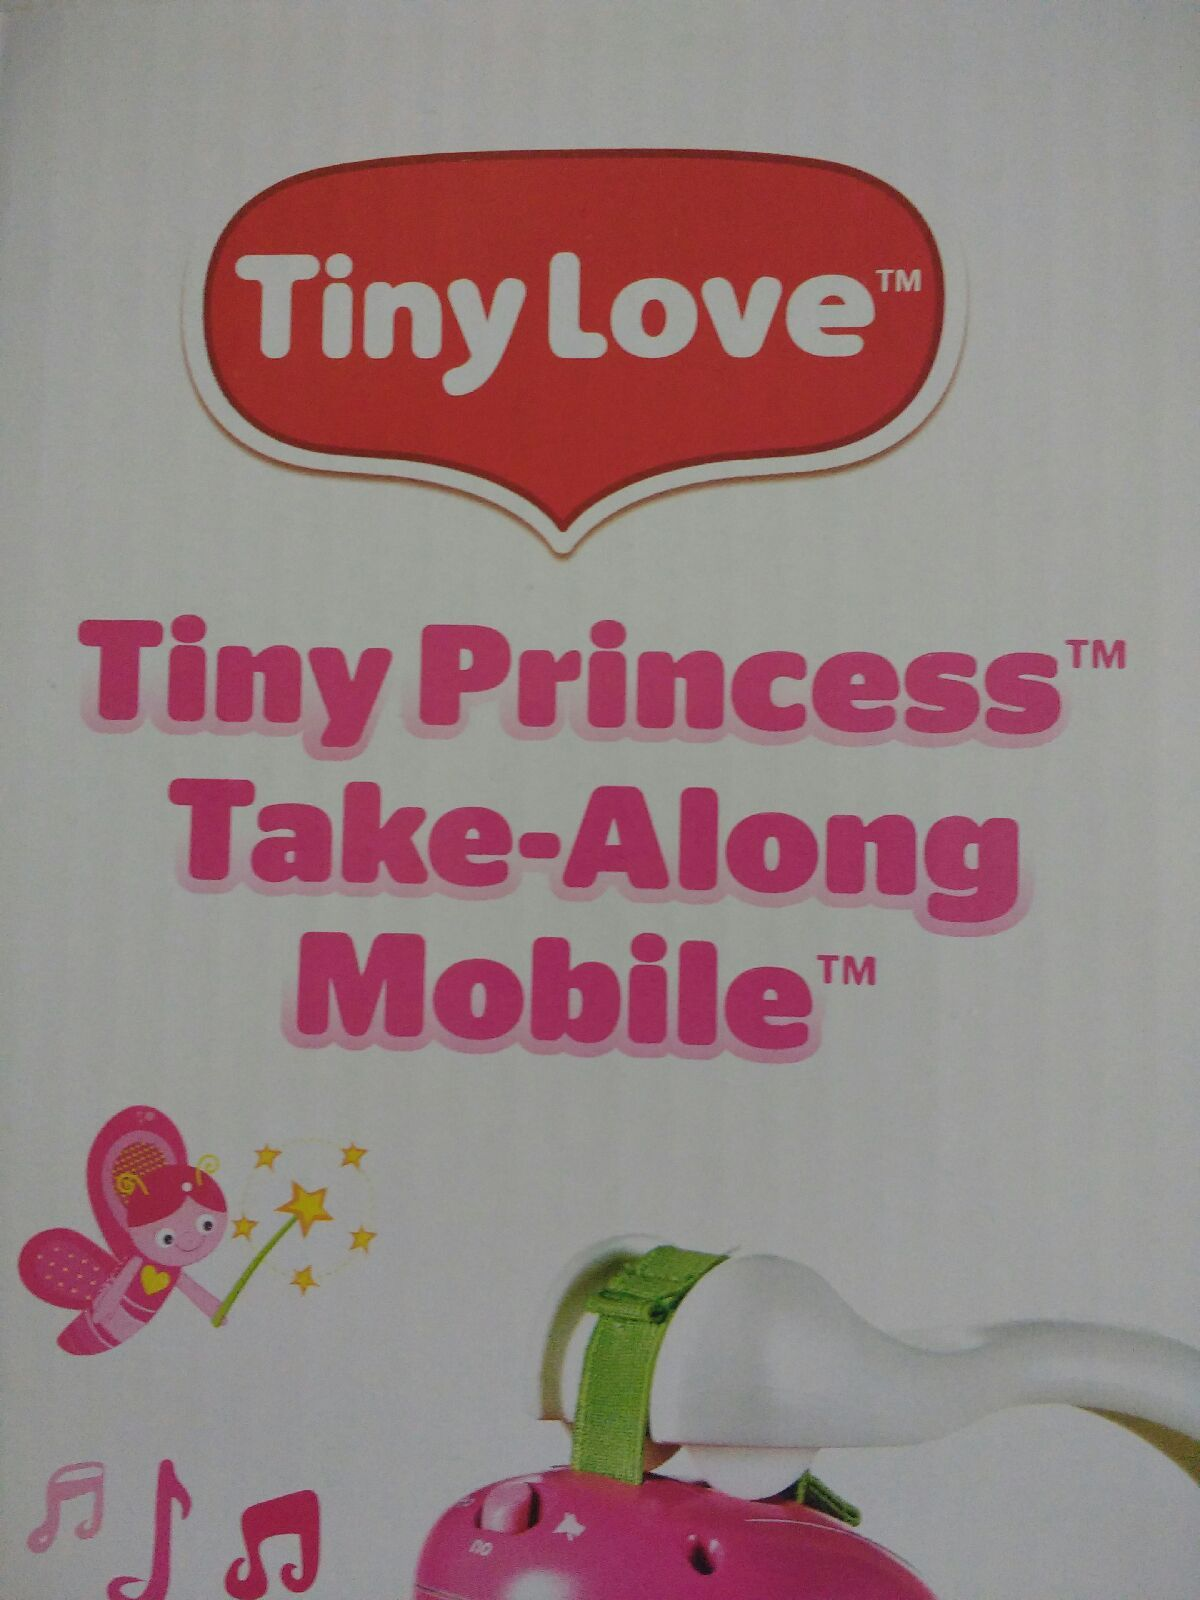 Tiny Love Take Along Mobile, Tiny Princess Easily portable mobile can be folded and taken anywhere you go. Can attach to most pack n plays.  infant carriers.  and strollers. Beautiful pink with adorable characters and soothing music will soothe baby where ever you are. Easily portable mobile can be folded and taken anywhere you go. Can attach to most pack n plays, infant carriers, and strollers. Beautiful pink with adorable characters and soothing music will soothe baby wherever you are…